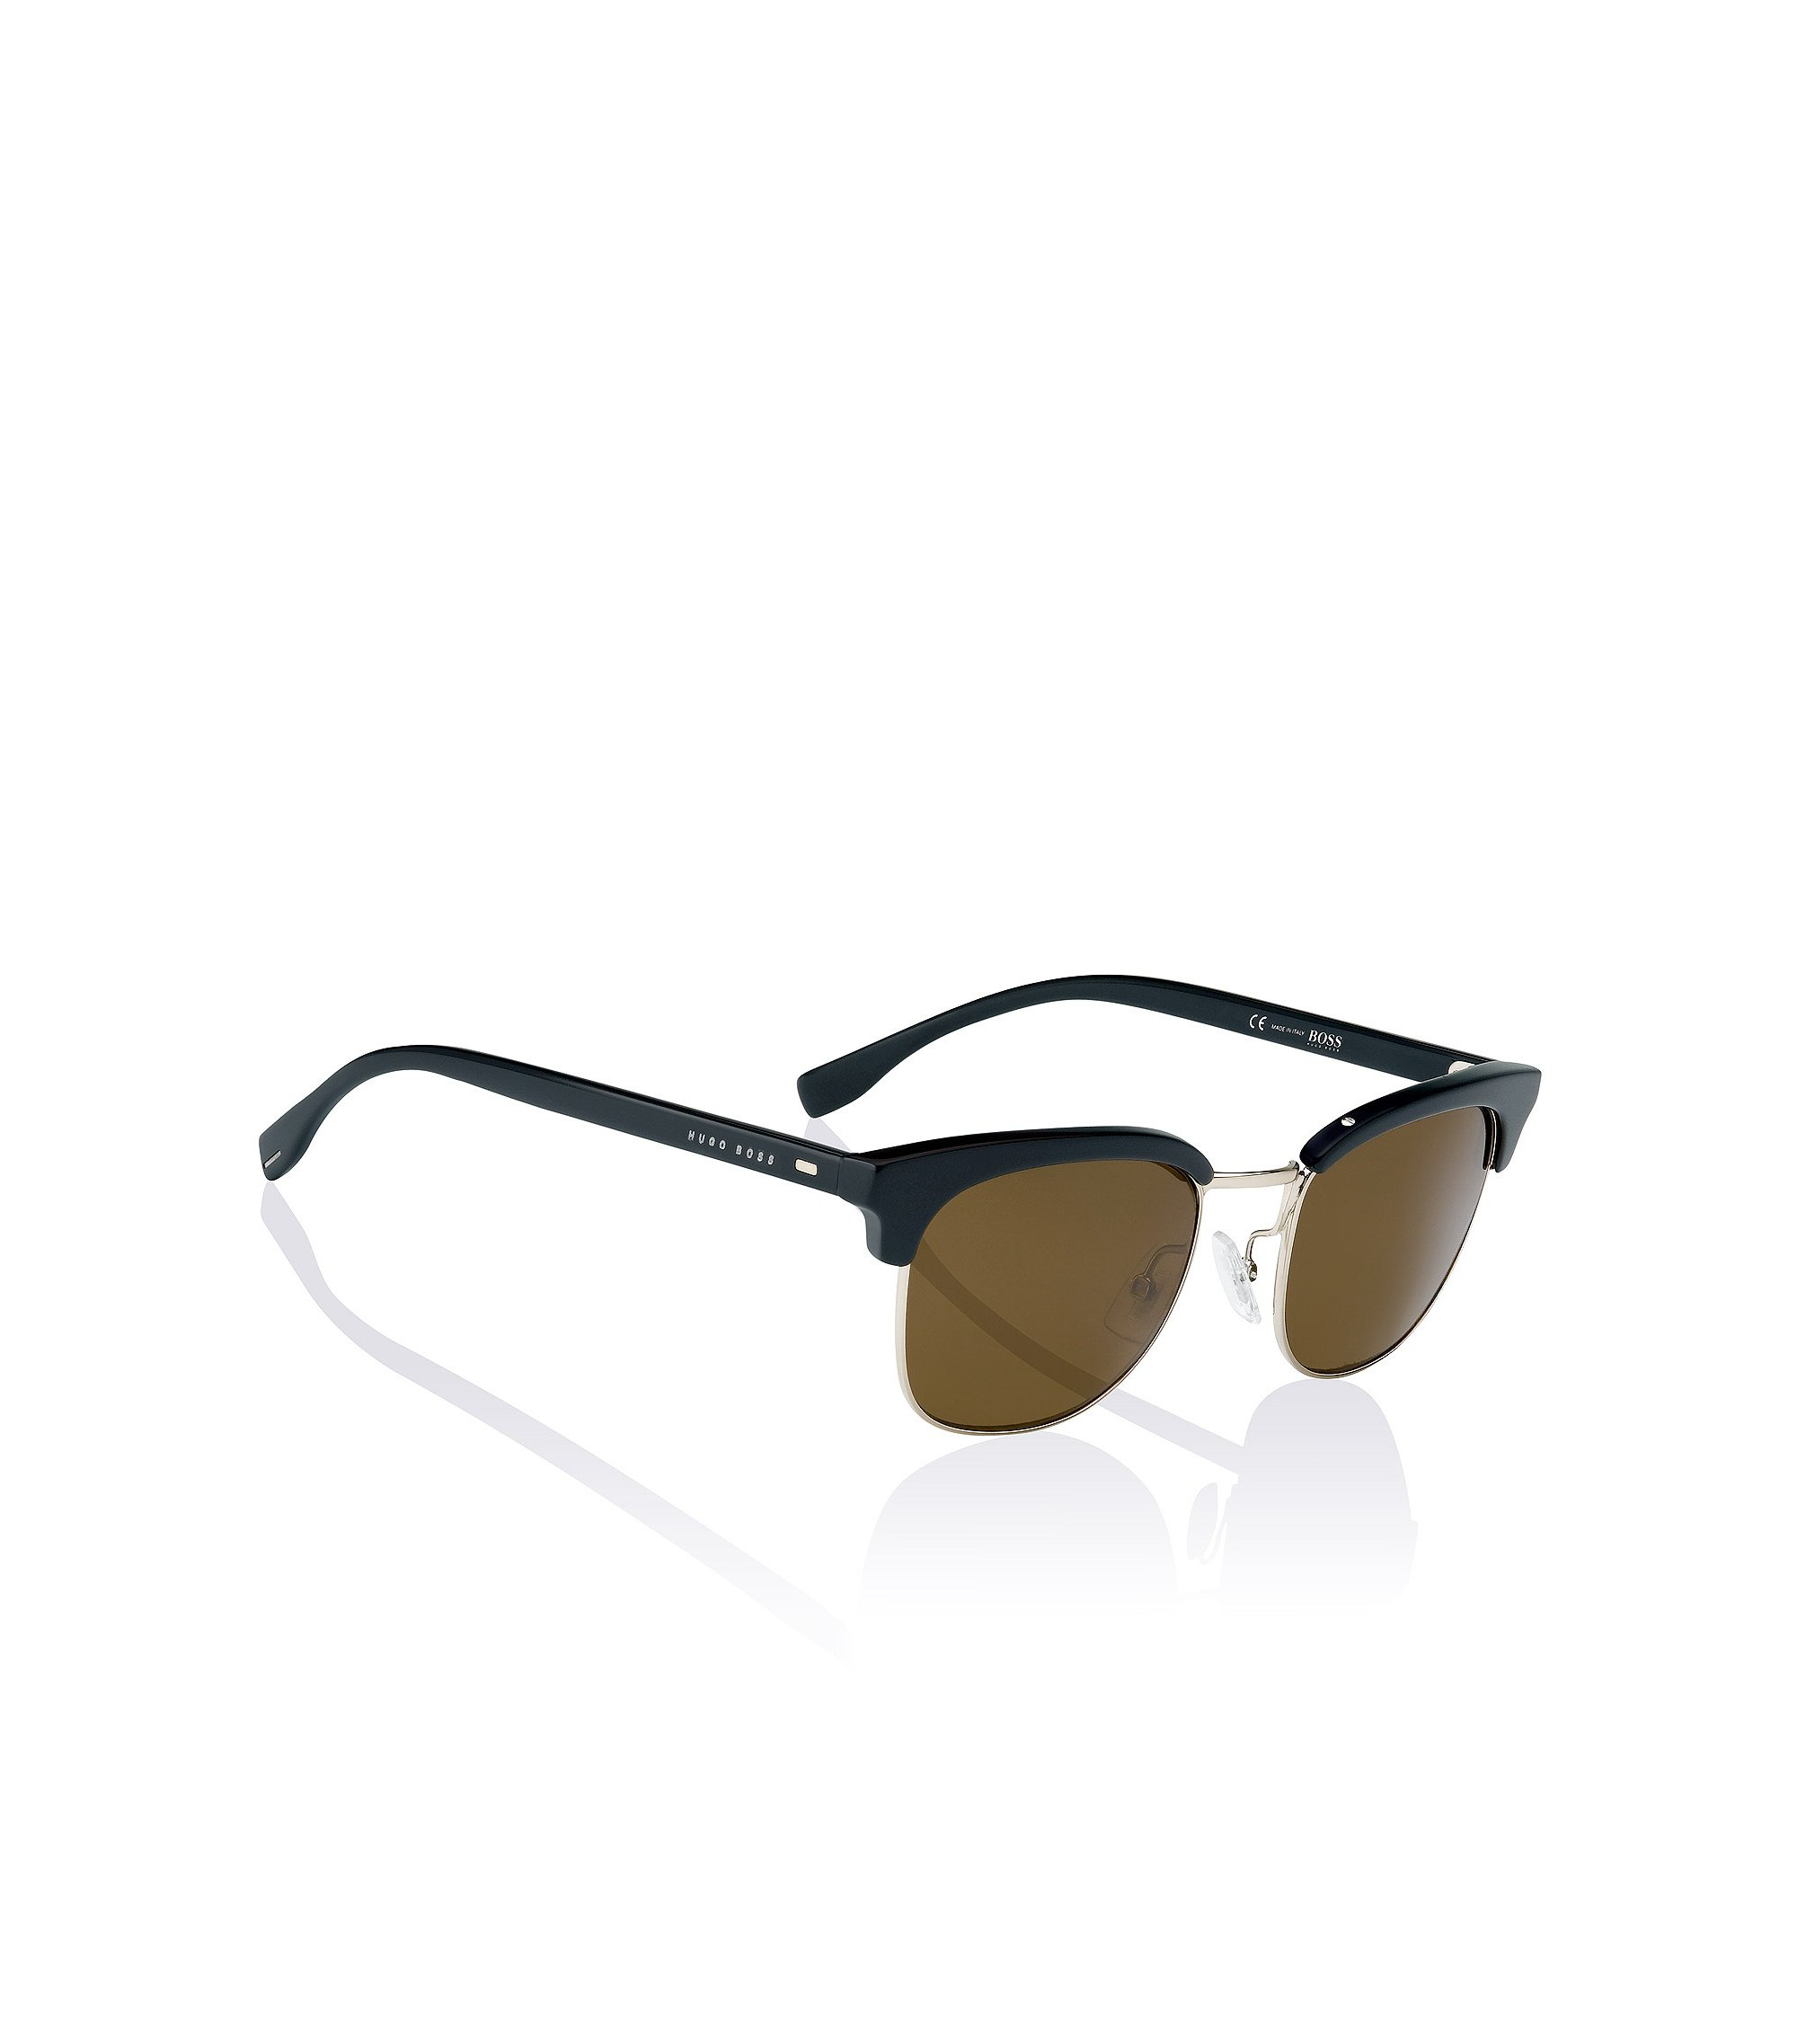 Clubmaster sunglasses 'BOSS 0667', Assorted-Pre-Pack